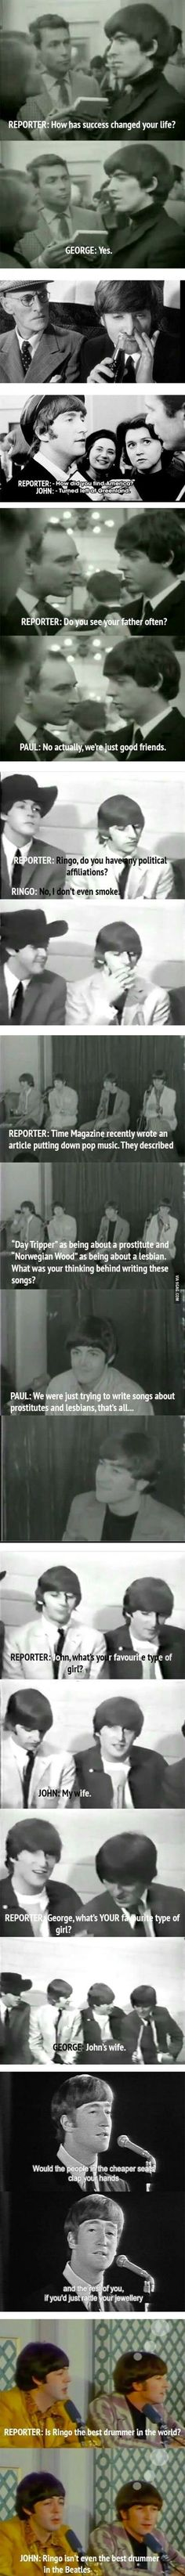 Just more reasons to love the Beatles...